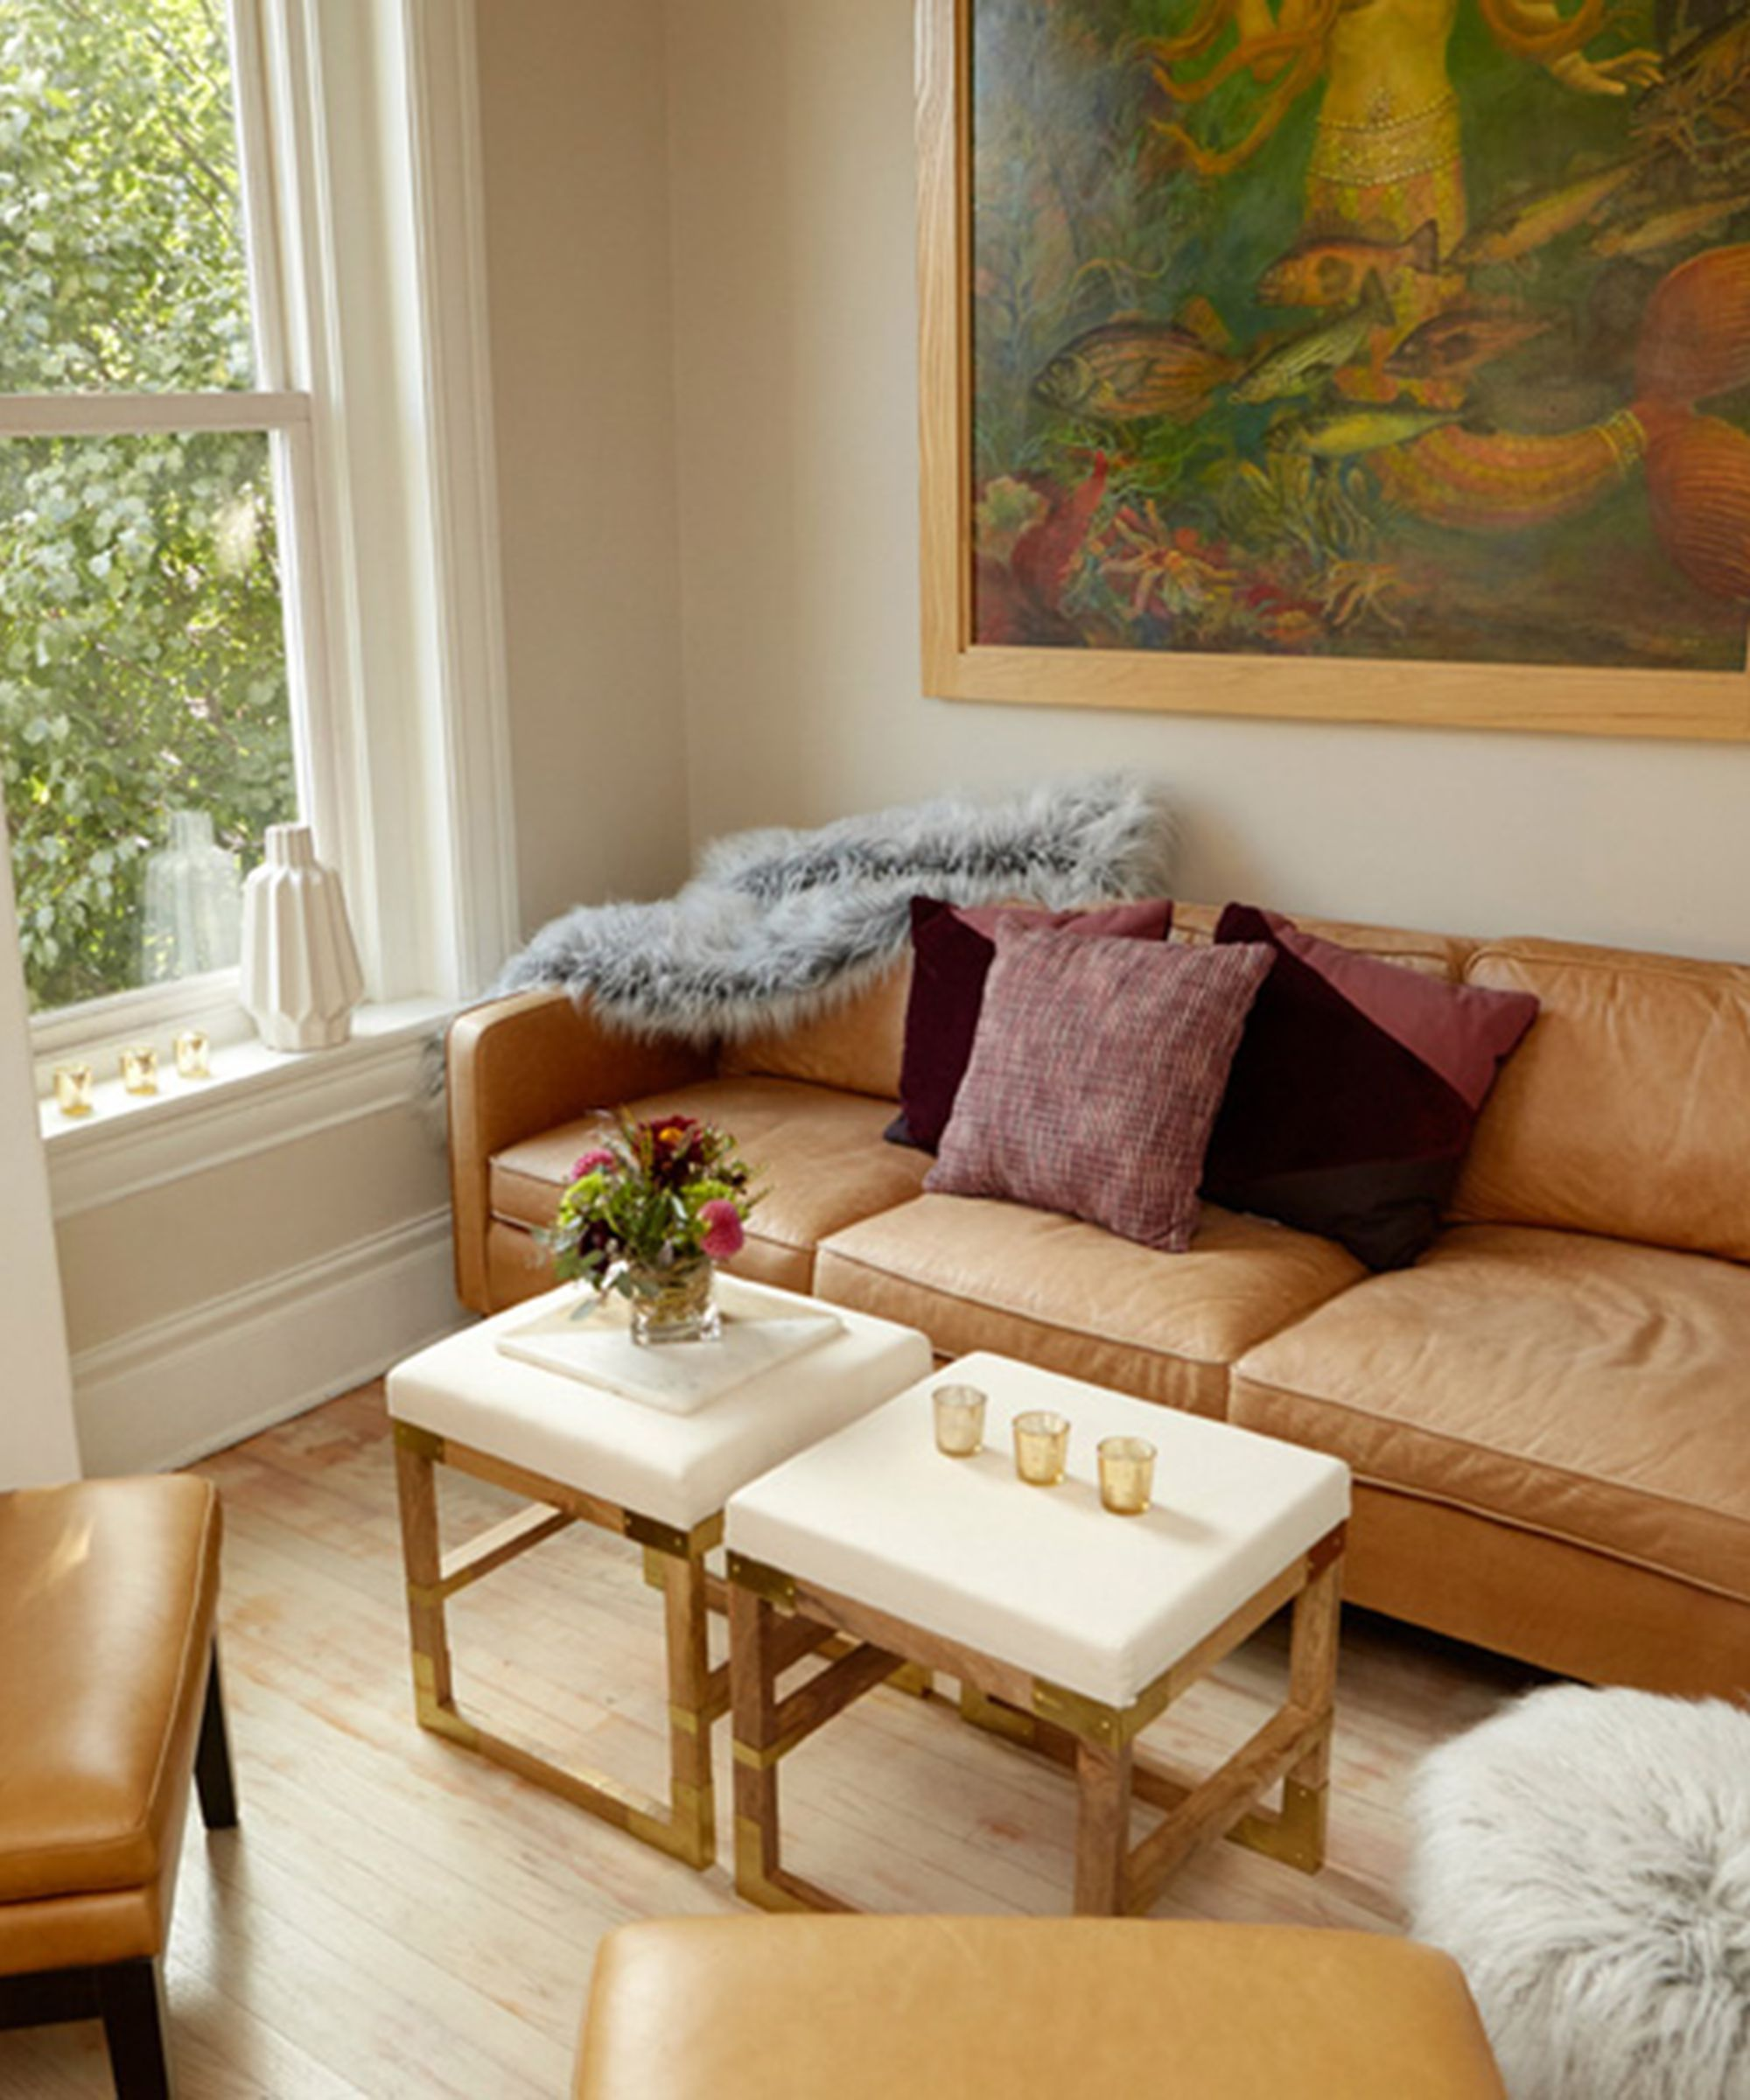 Best Apartment Finder Websites: These Home-Decor Sites Are Too Good